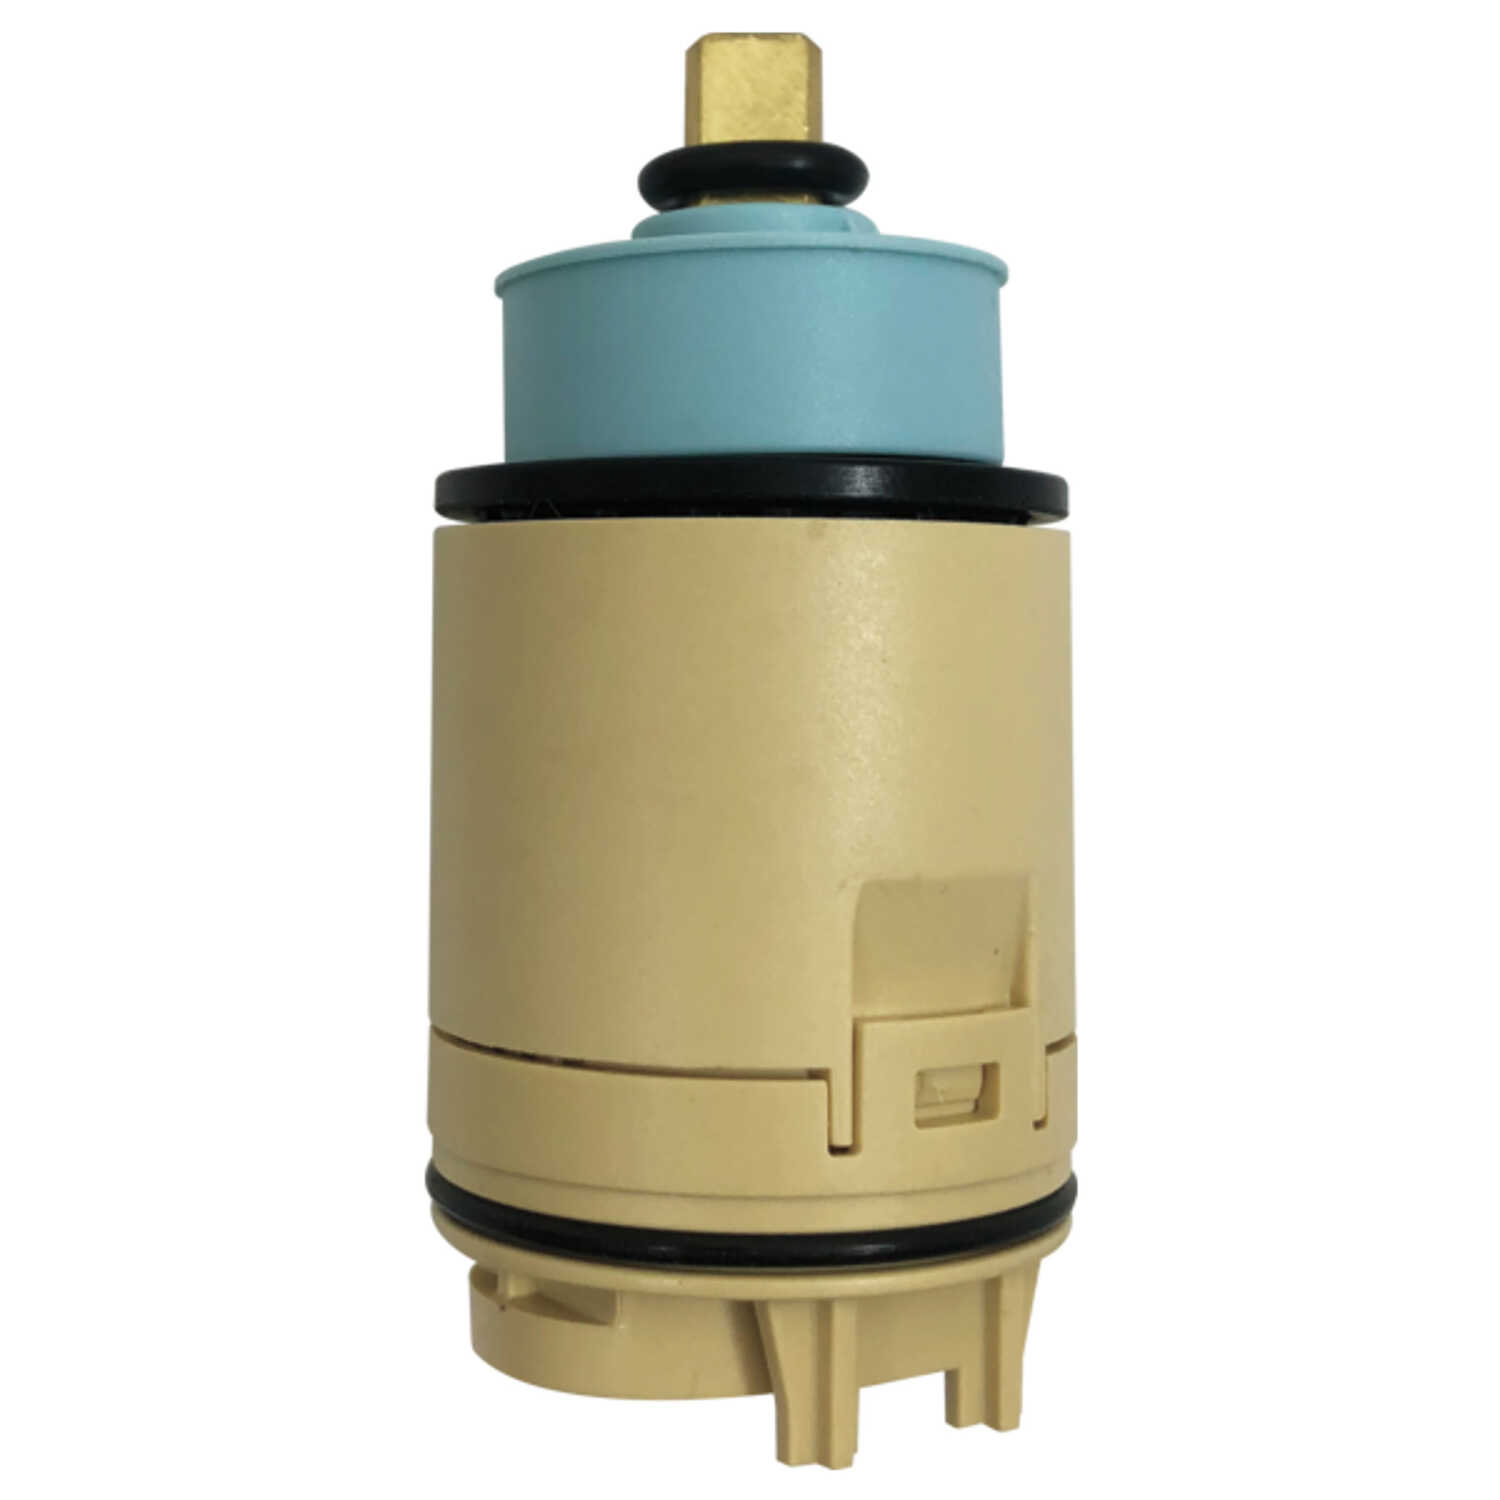 Peerless  Pressure Balancing Unit  RP70538  Valve Cartridge  For Peerless Tub and Shower Faucets